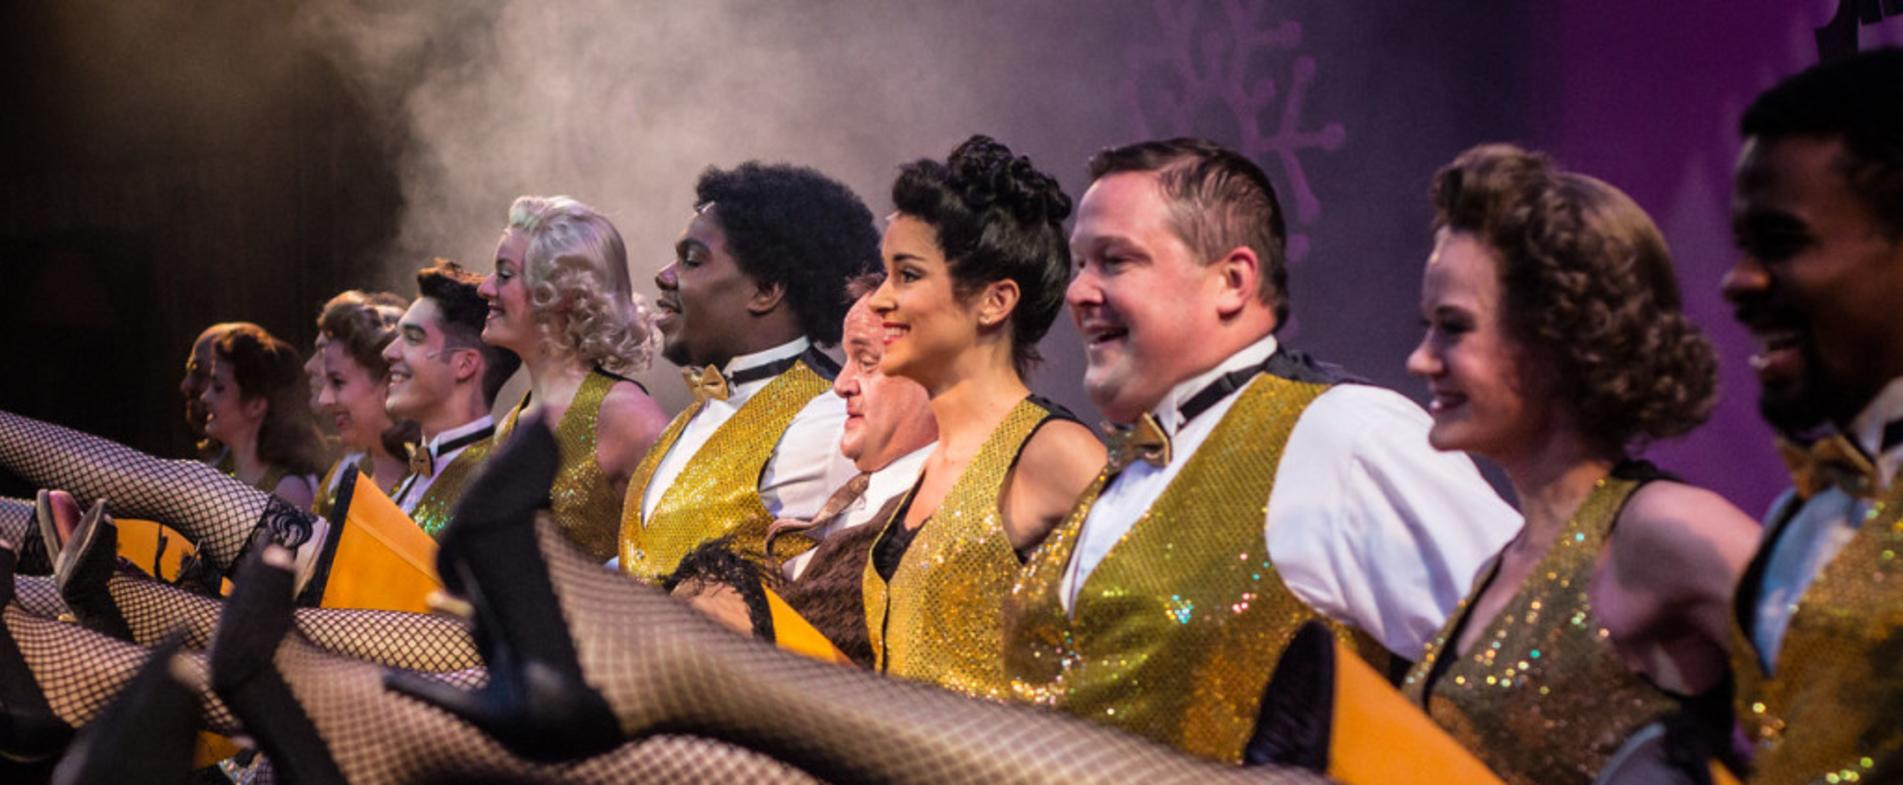 Broadway Grand Rapids is a part of a strong performing arts community in Grand Rapids.